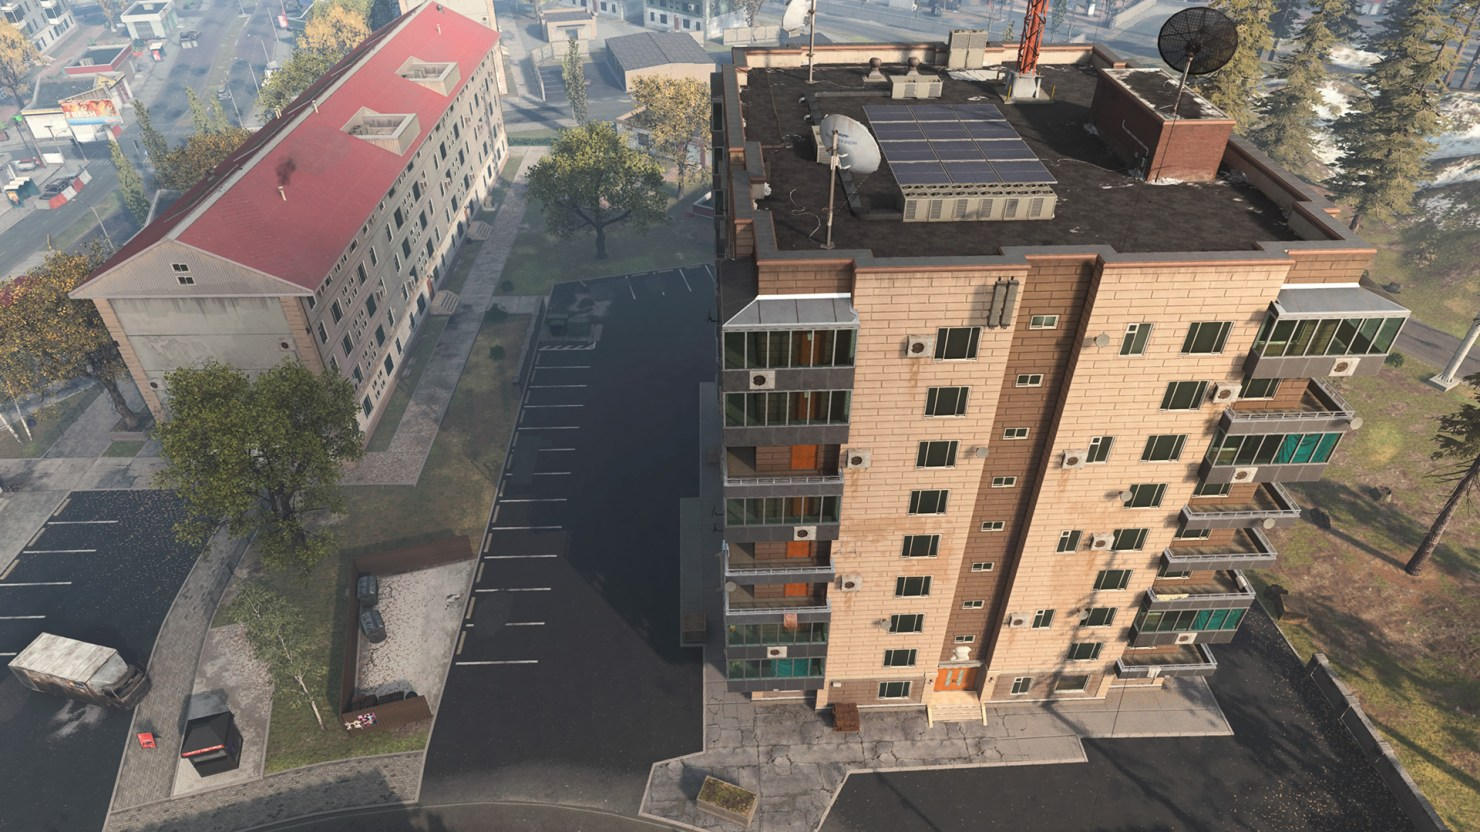 ZONE3D 031B Apartments Block North.jpg?width=640&fit=bounds&height=480&quality=20&dpr=0